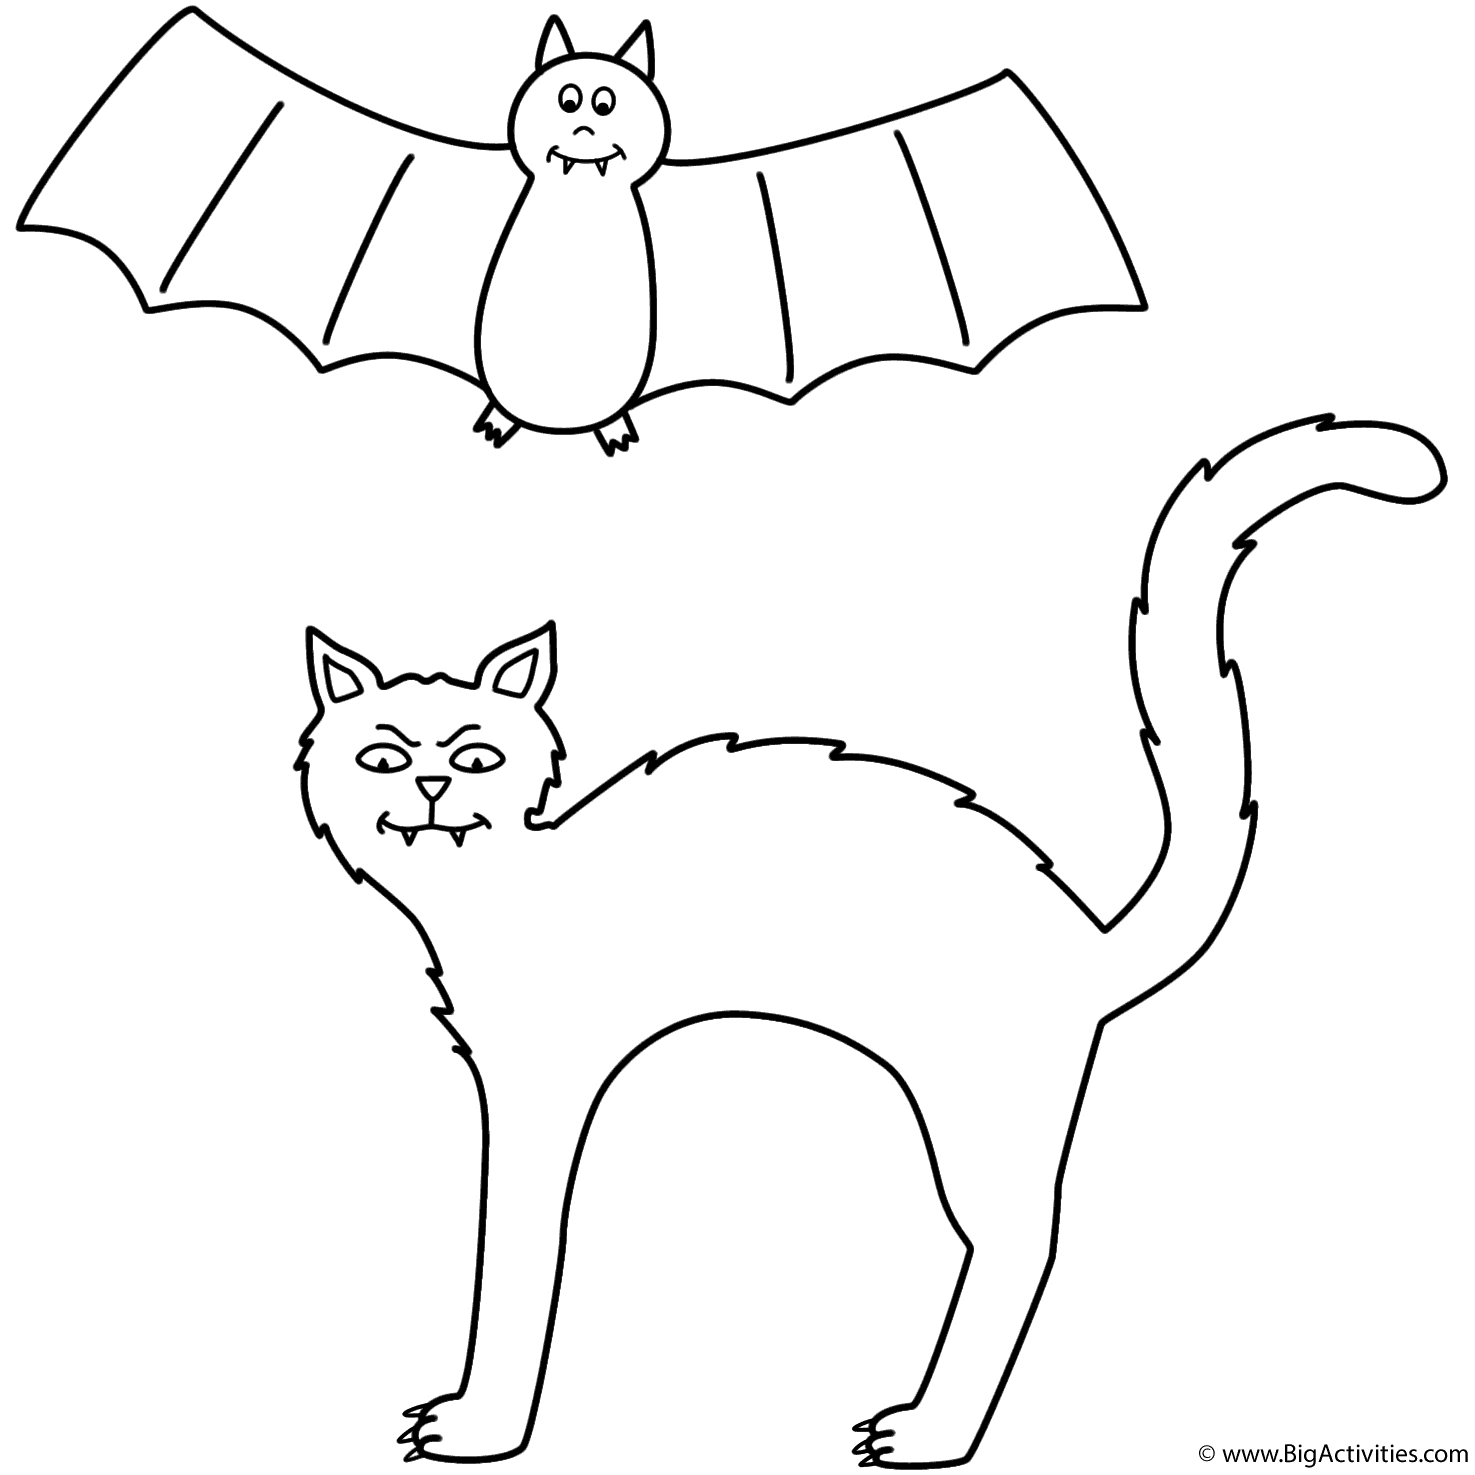 Black cat with bat Coloring Page